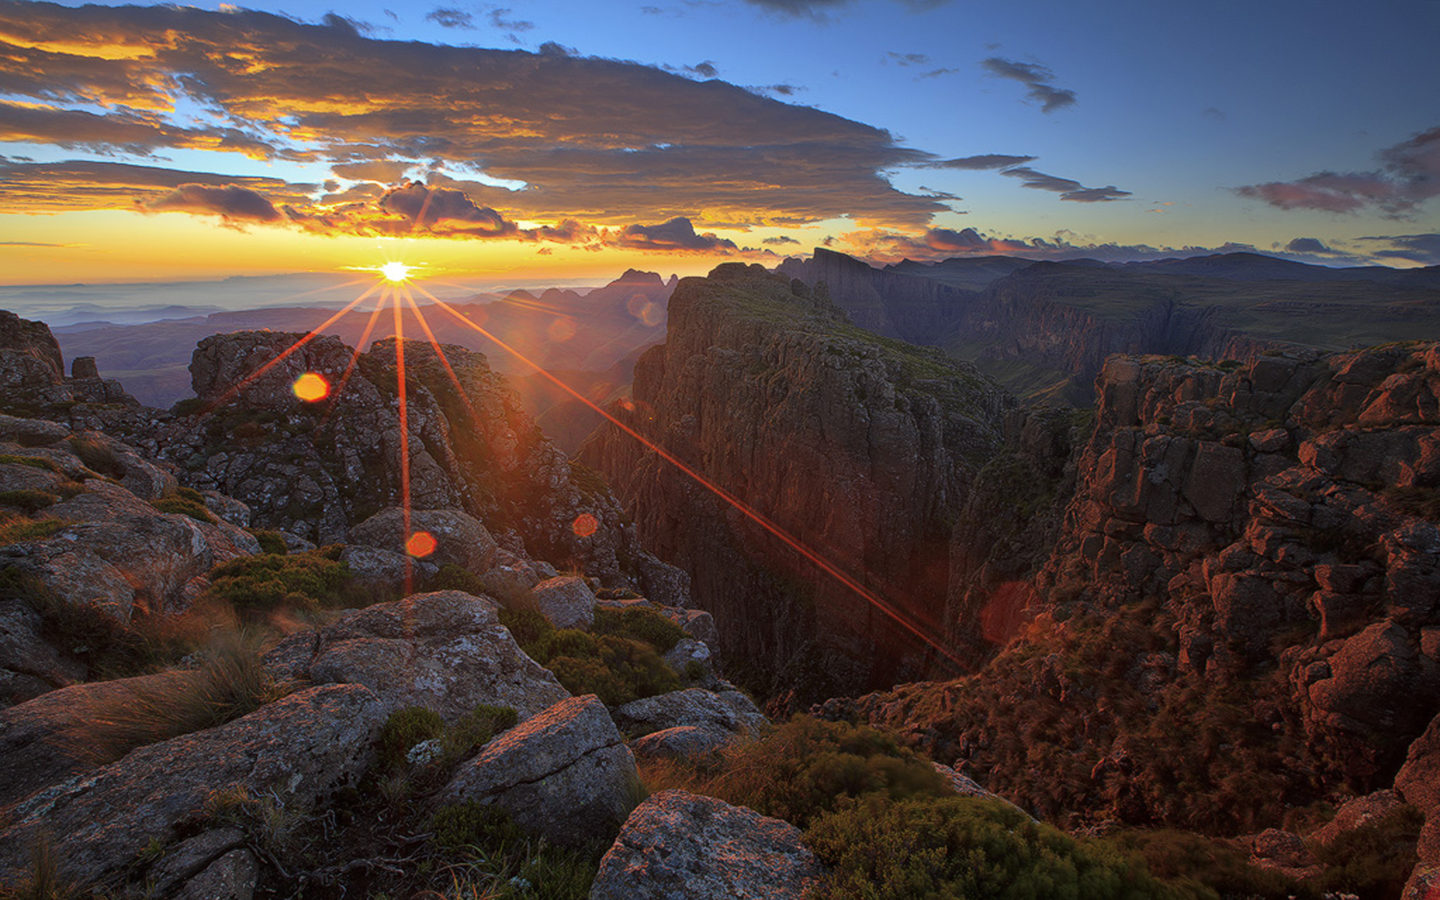 Sunset Rays Dark Red Cloud Canyon Rock Hd Wallpaper The